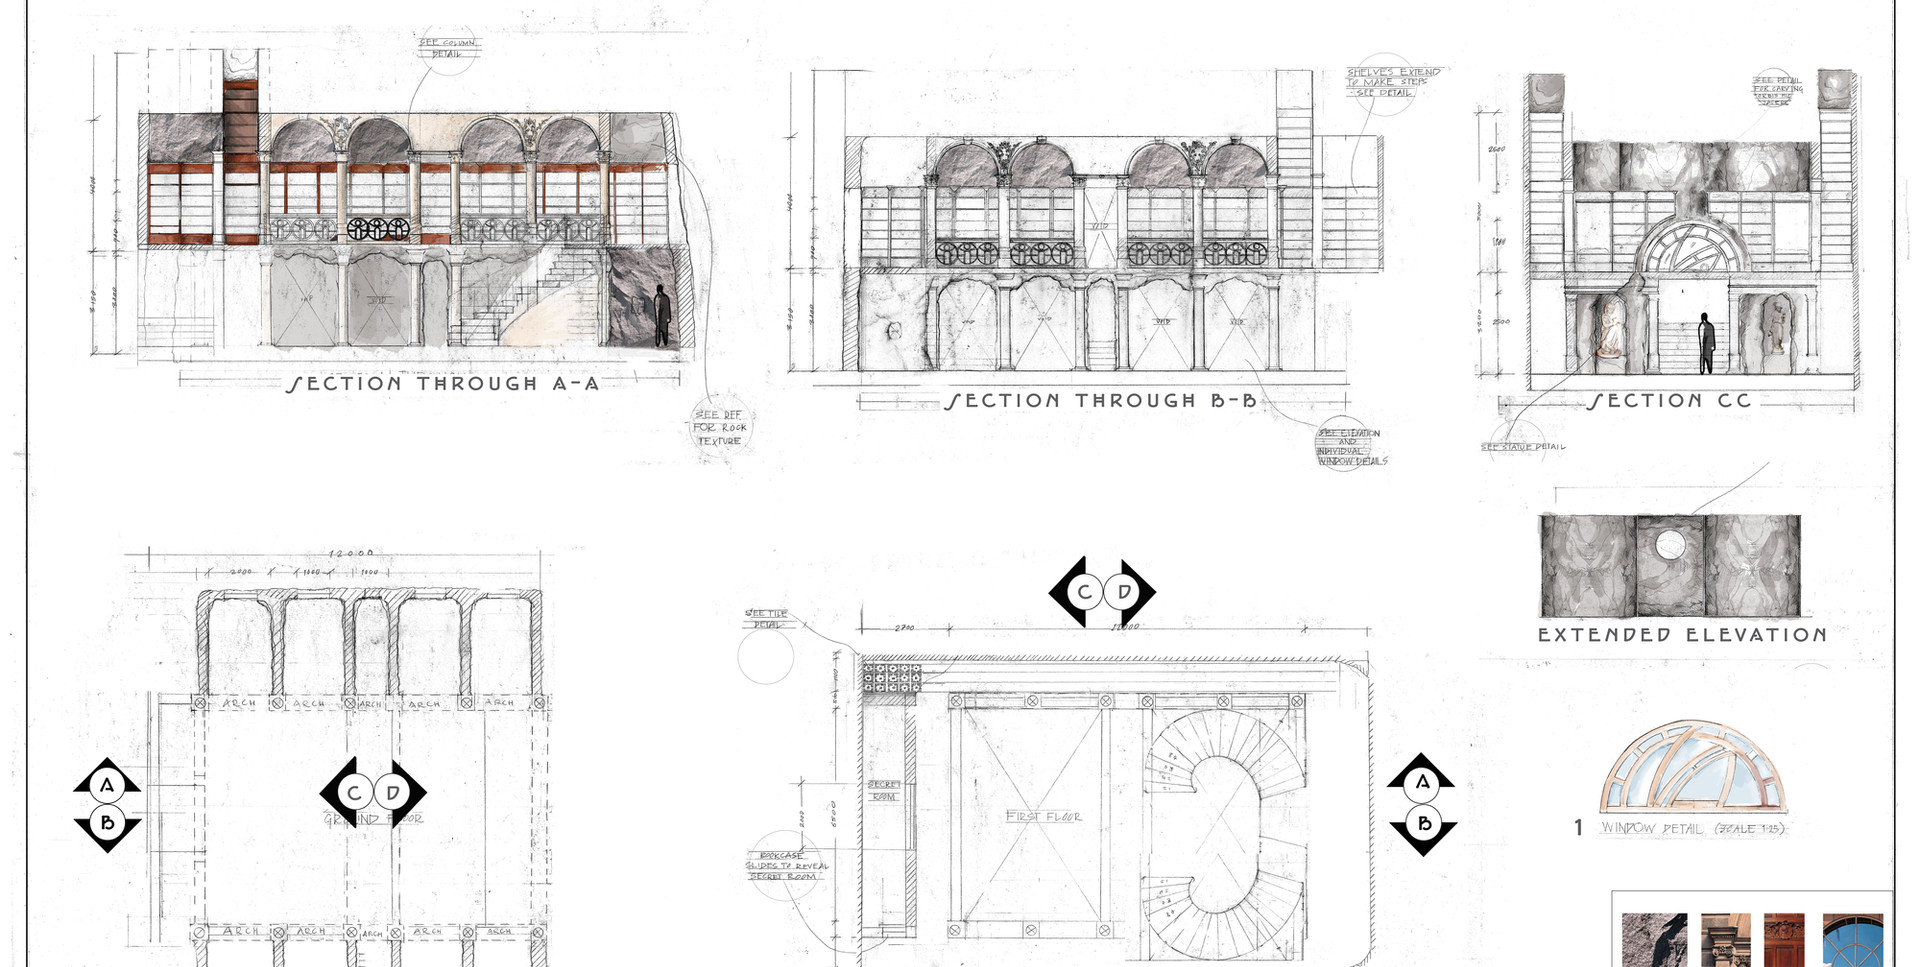 Snicket Files - Technical Drawing - Sheet 2